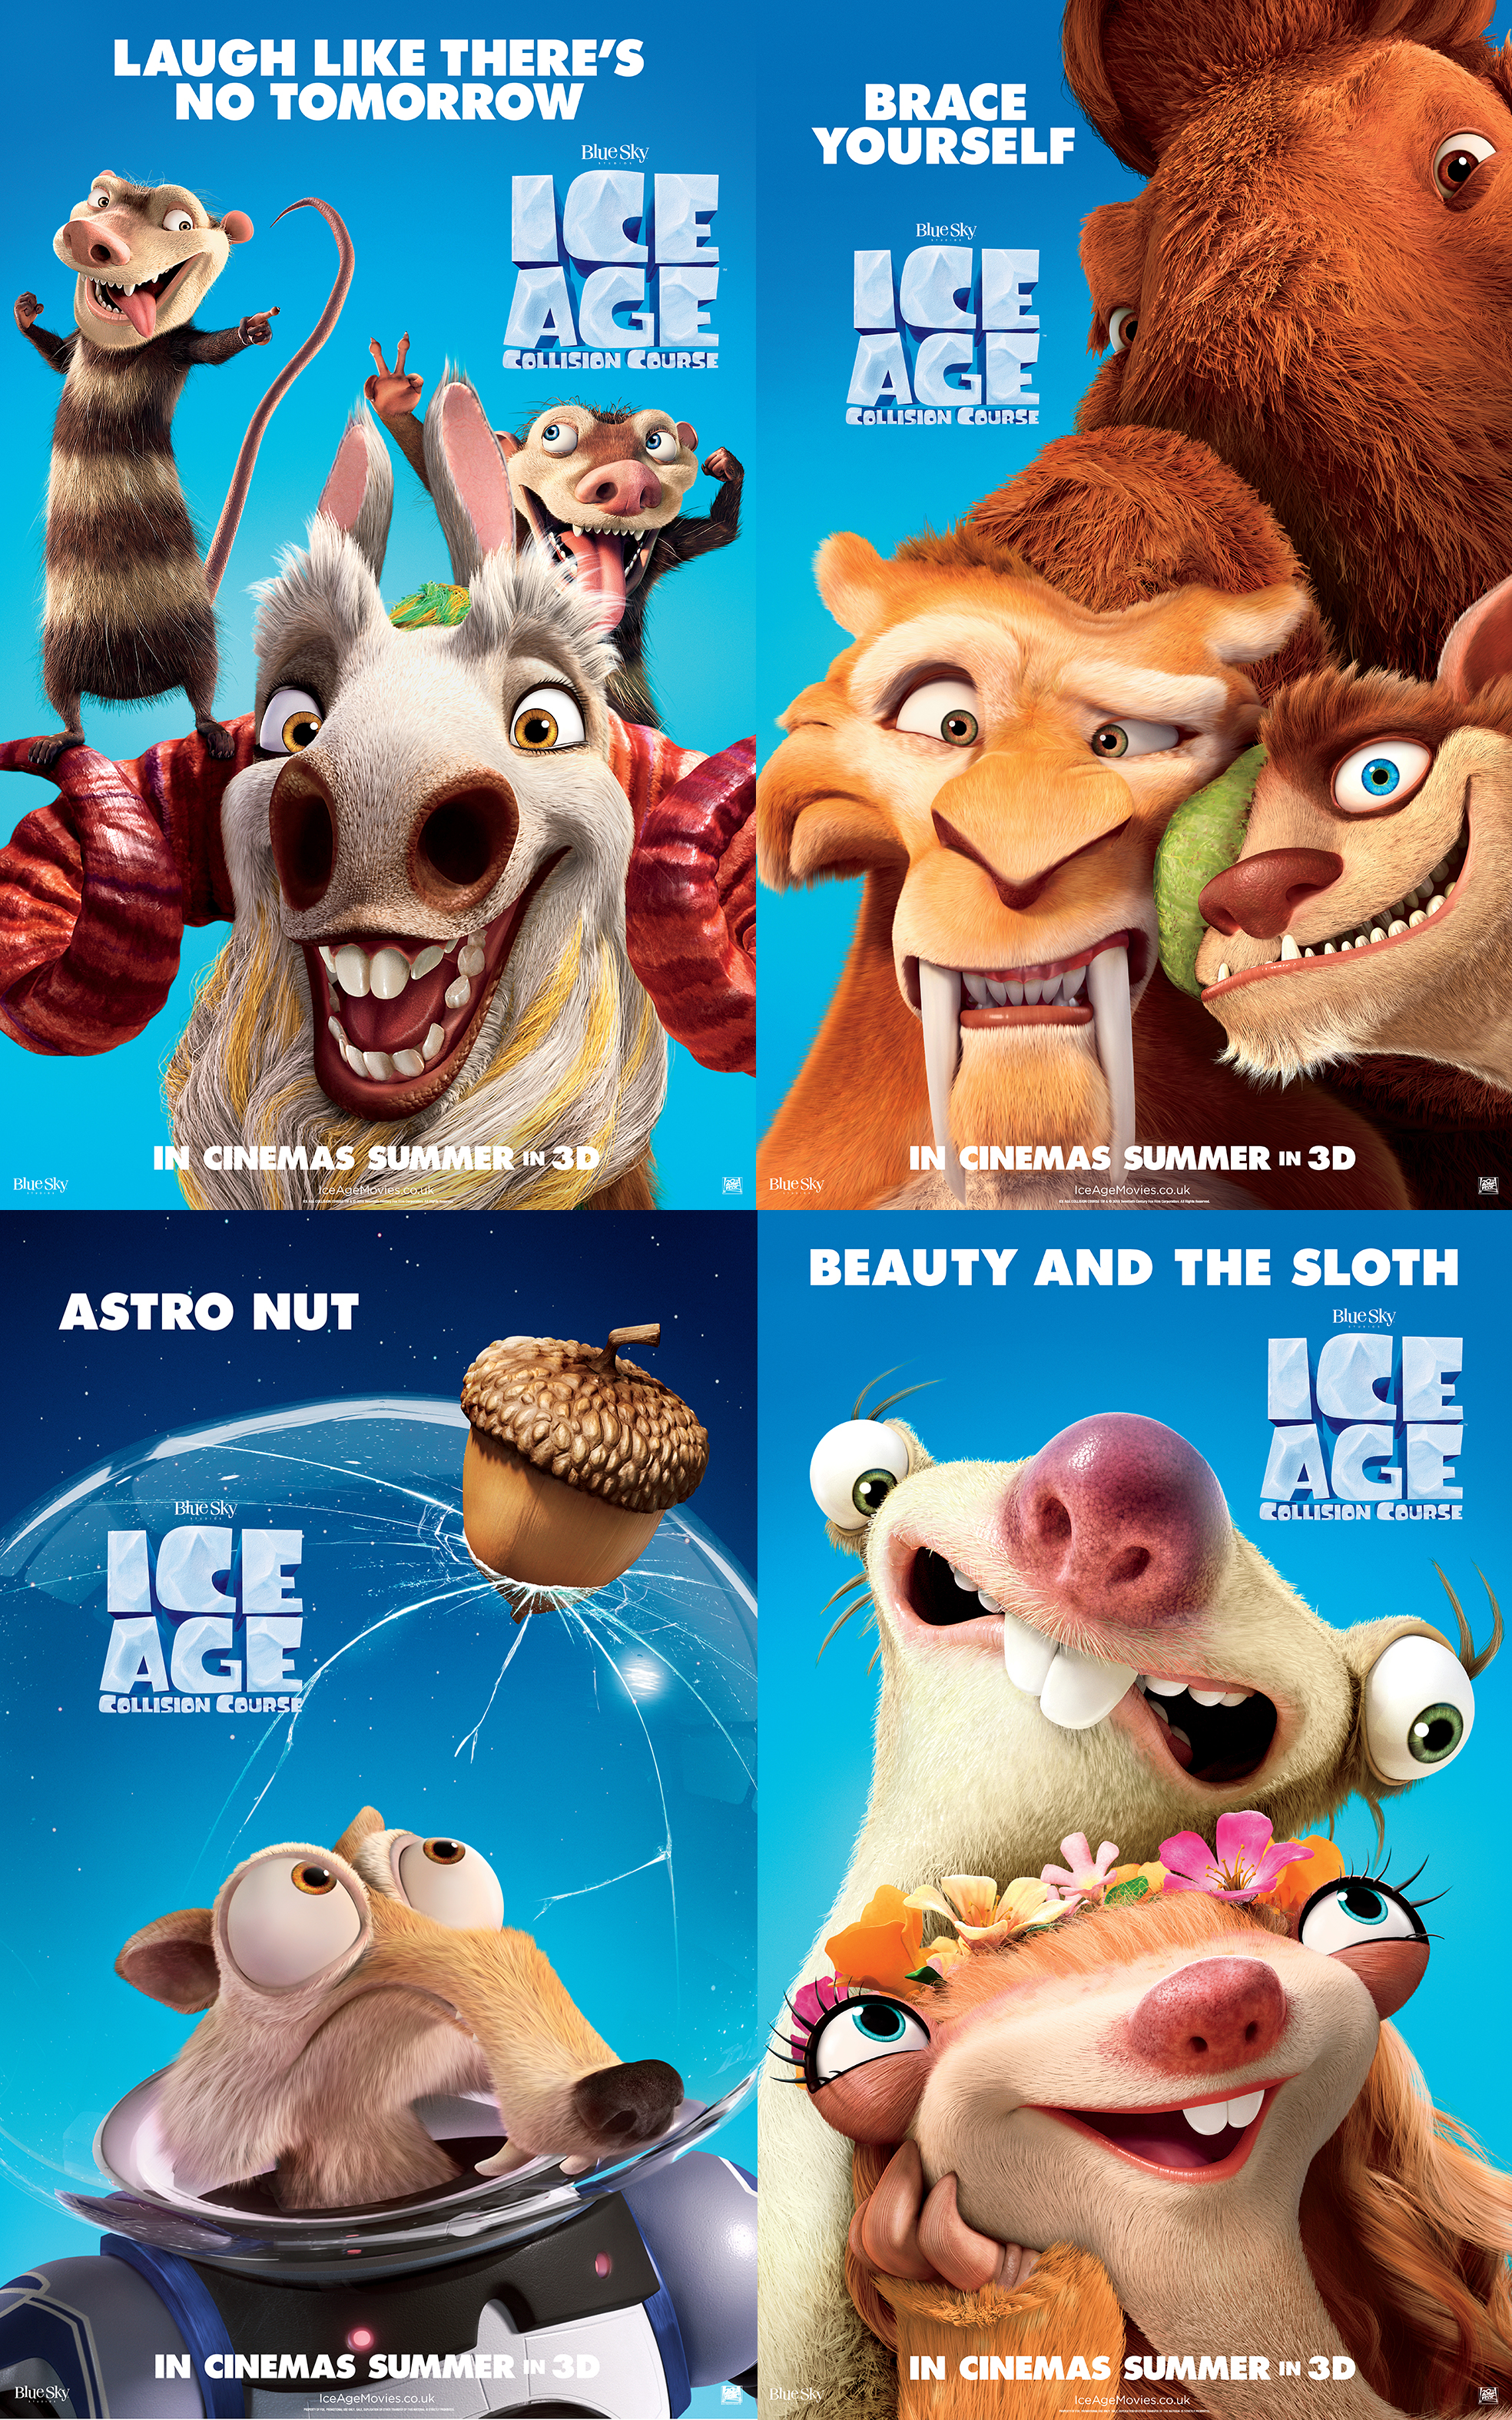 Free online ice age coloring - Character Posters Released For Ice Age Collision Course In Cinemas July 15th